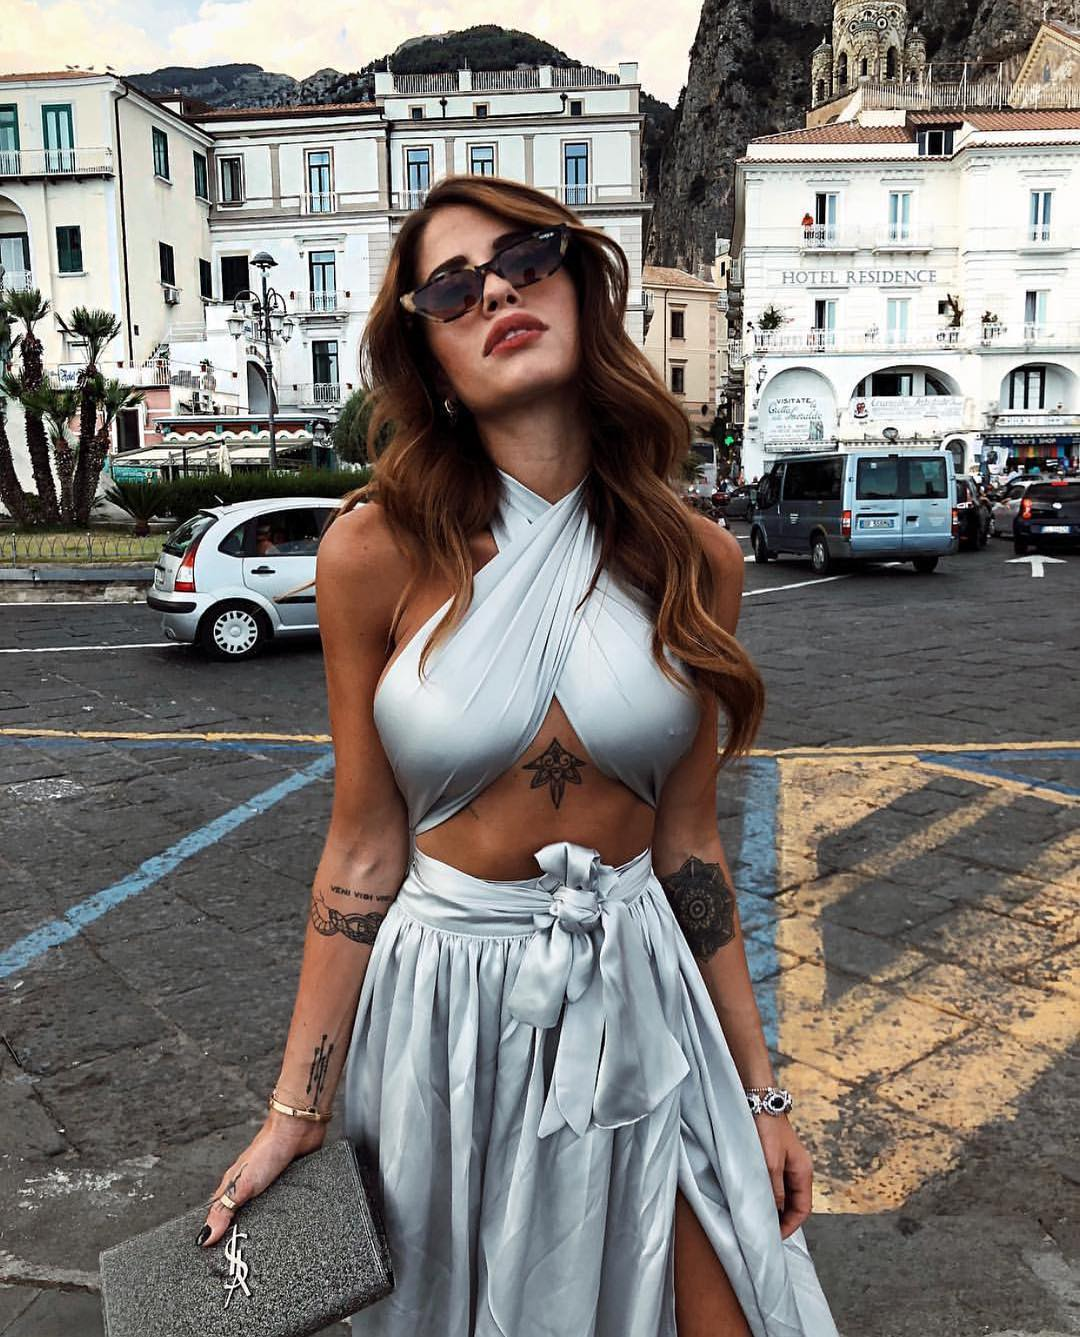 Metallic Pastel Blue Two Piece Dress For Summer Parties 2020